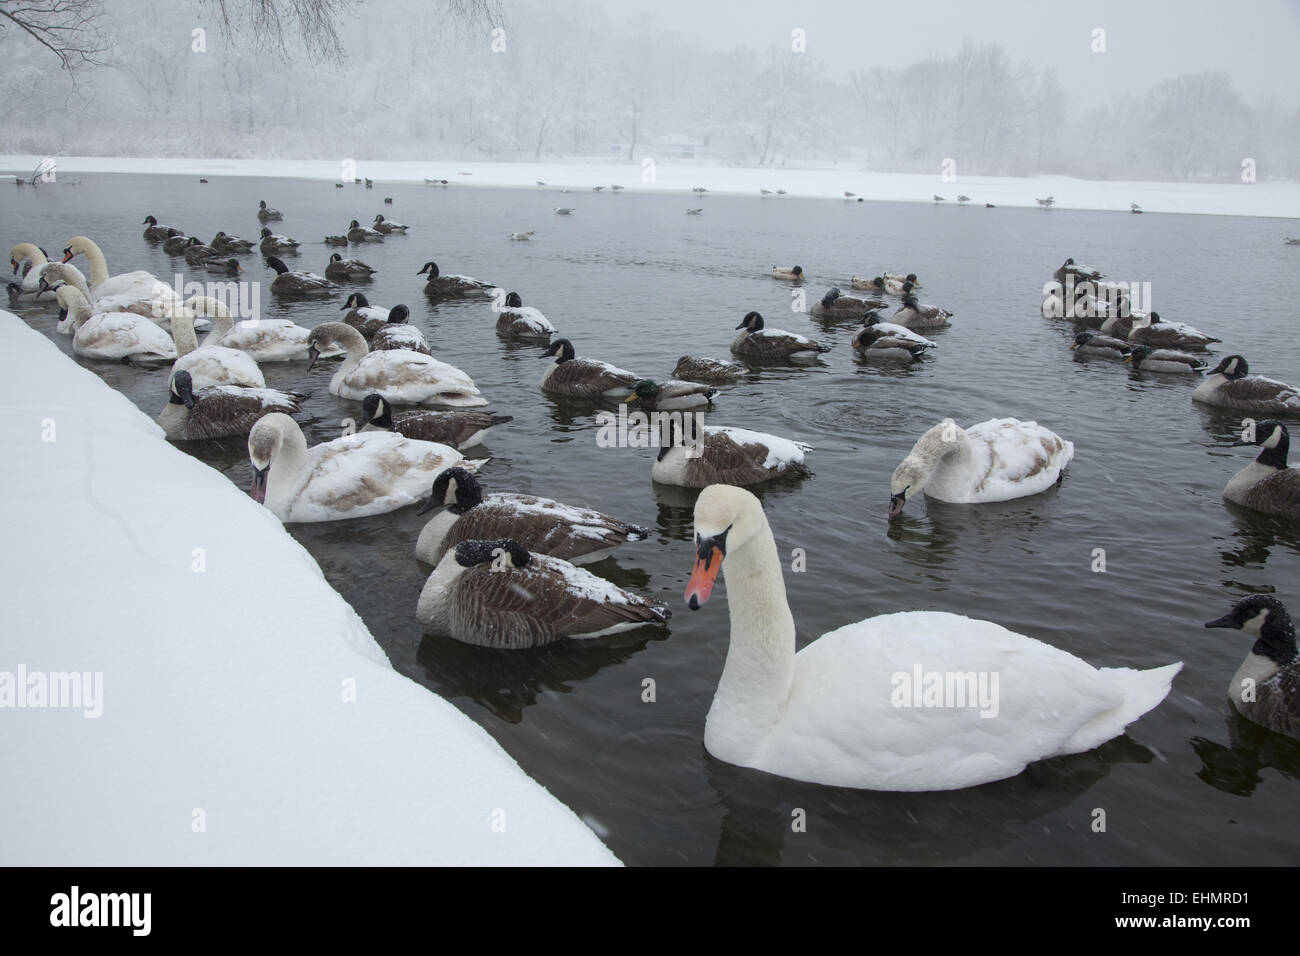 Water birds gather along the edge of the partially frozen lake in Prospect Park, hoping to be fed by people. Brooklyn, - Stock Image